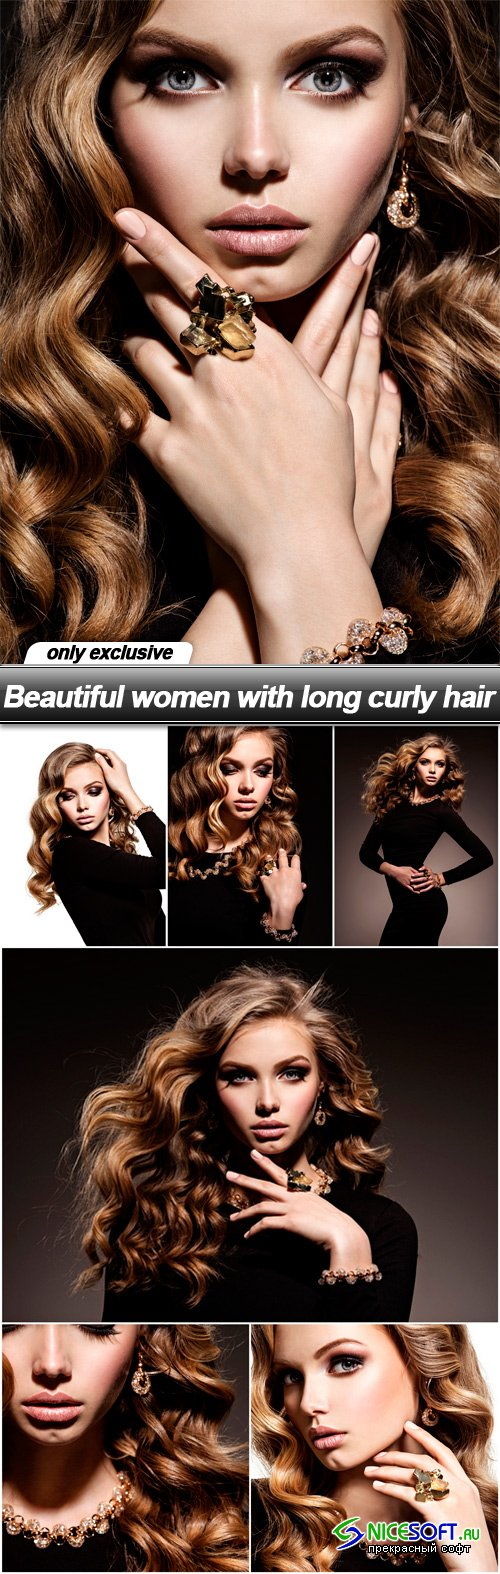 Beautiful women with long curly hair